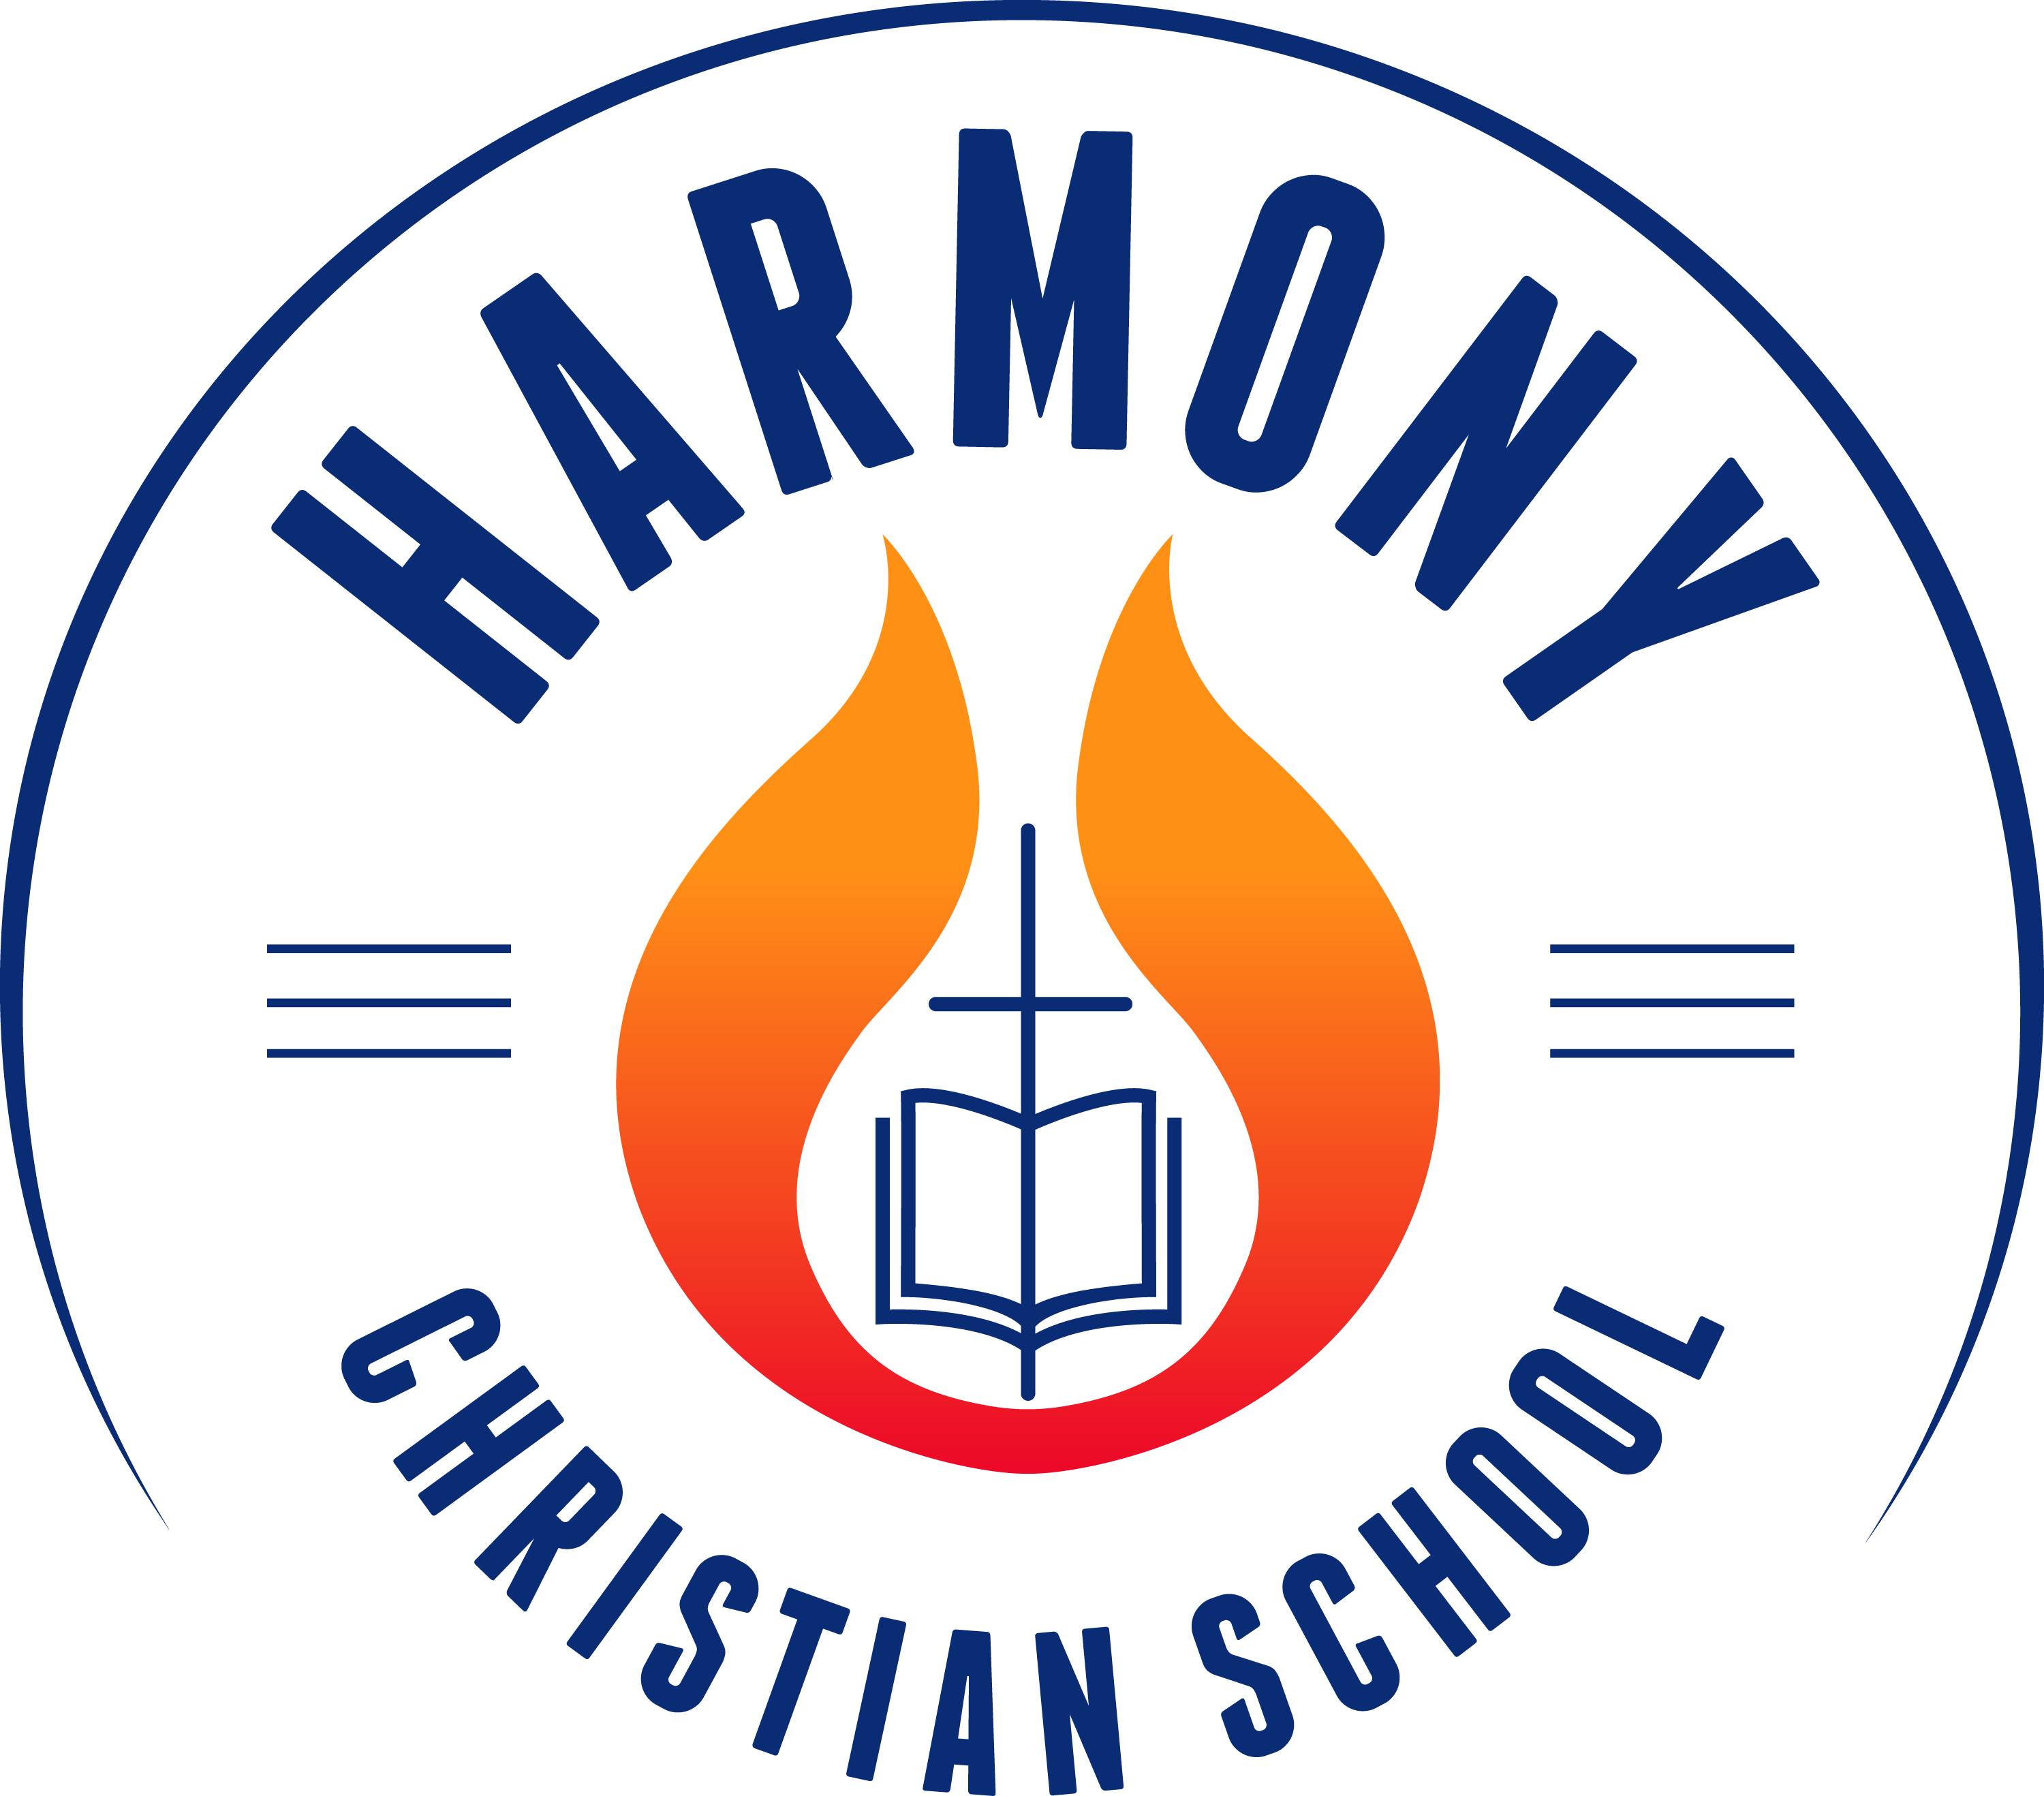 Harmony Christian School